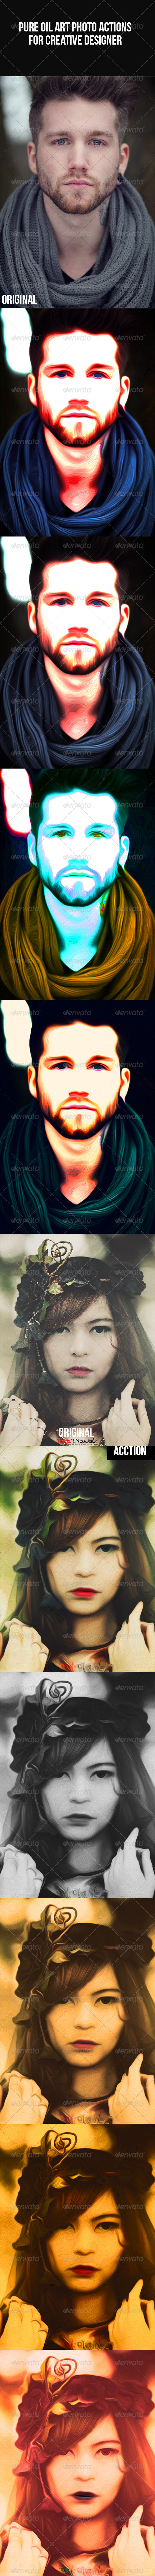 GraphicRiver Pure Oil Art Photo Actions 7987531